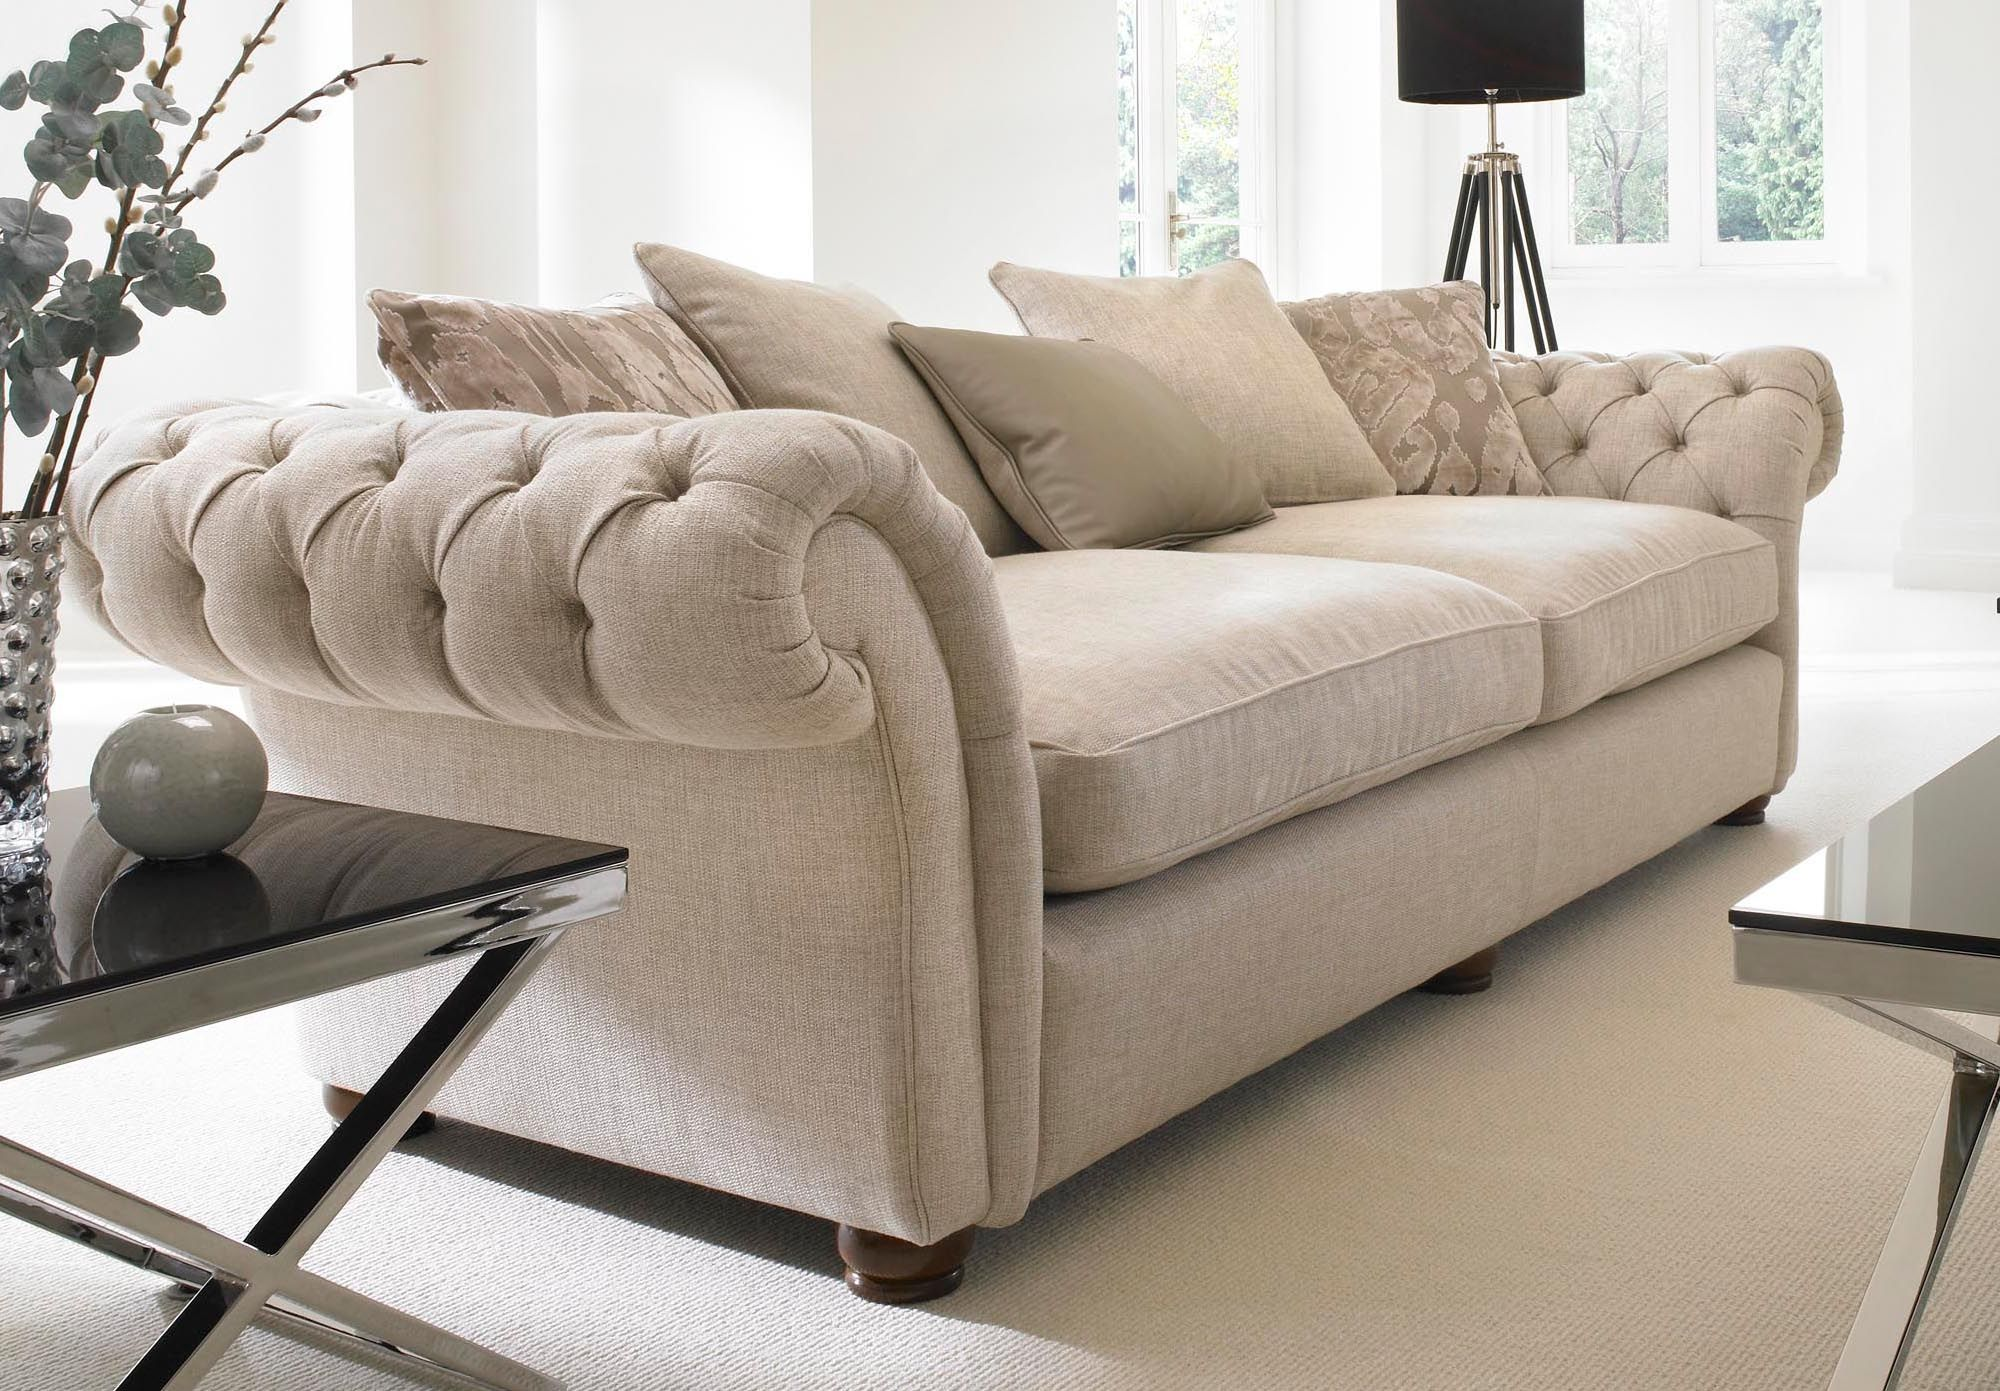 furniture village leather corner sofa bed landon sectional reviews sofas reduced annalise 4 seater